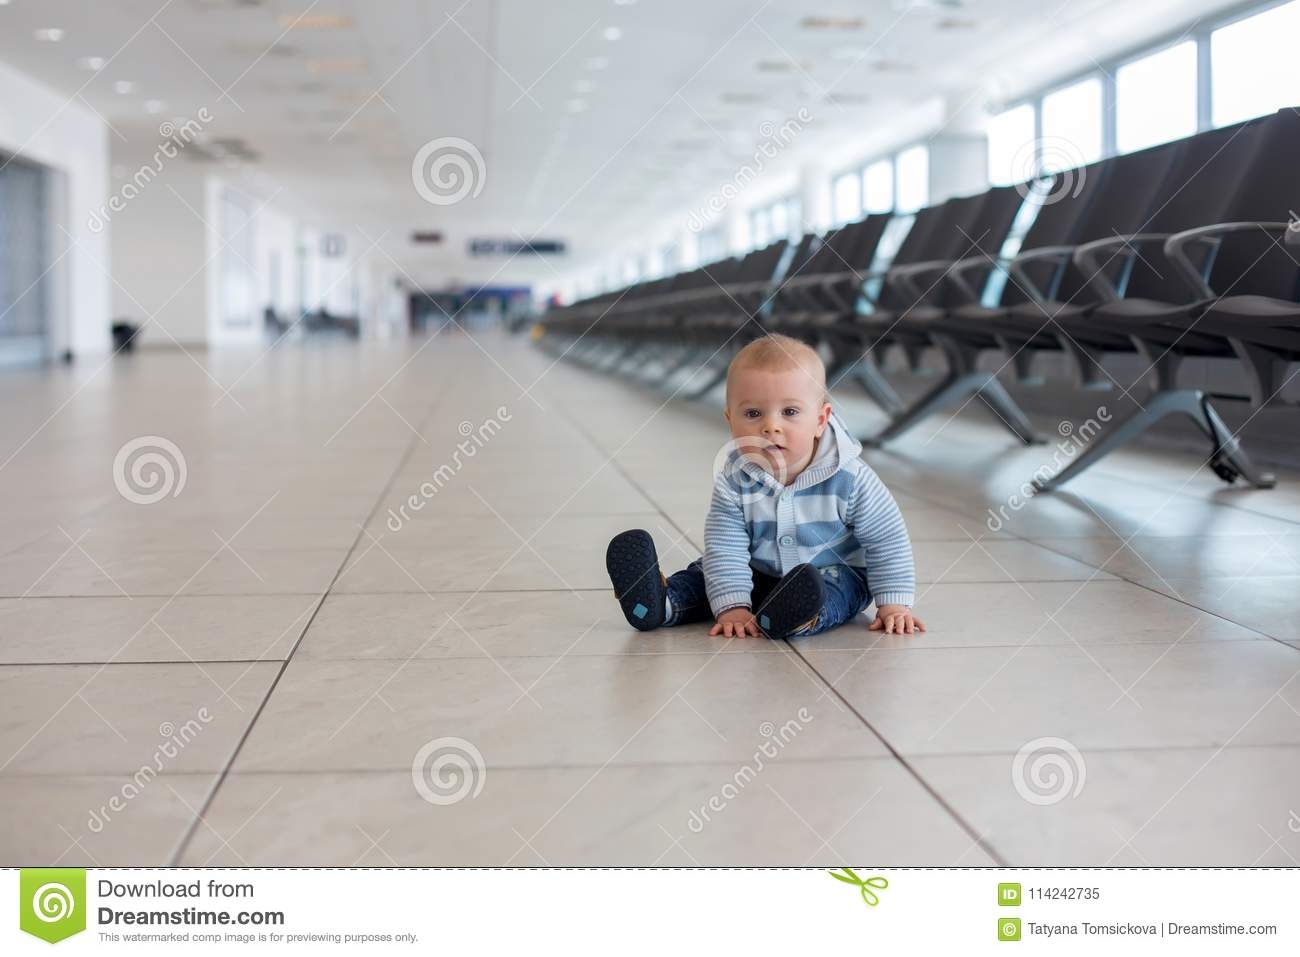 Little child, baby boy, playing at the airport, while waiting for his plane to departure